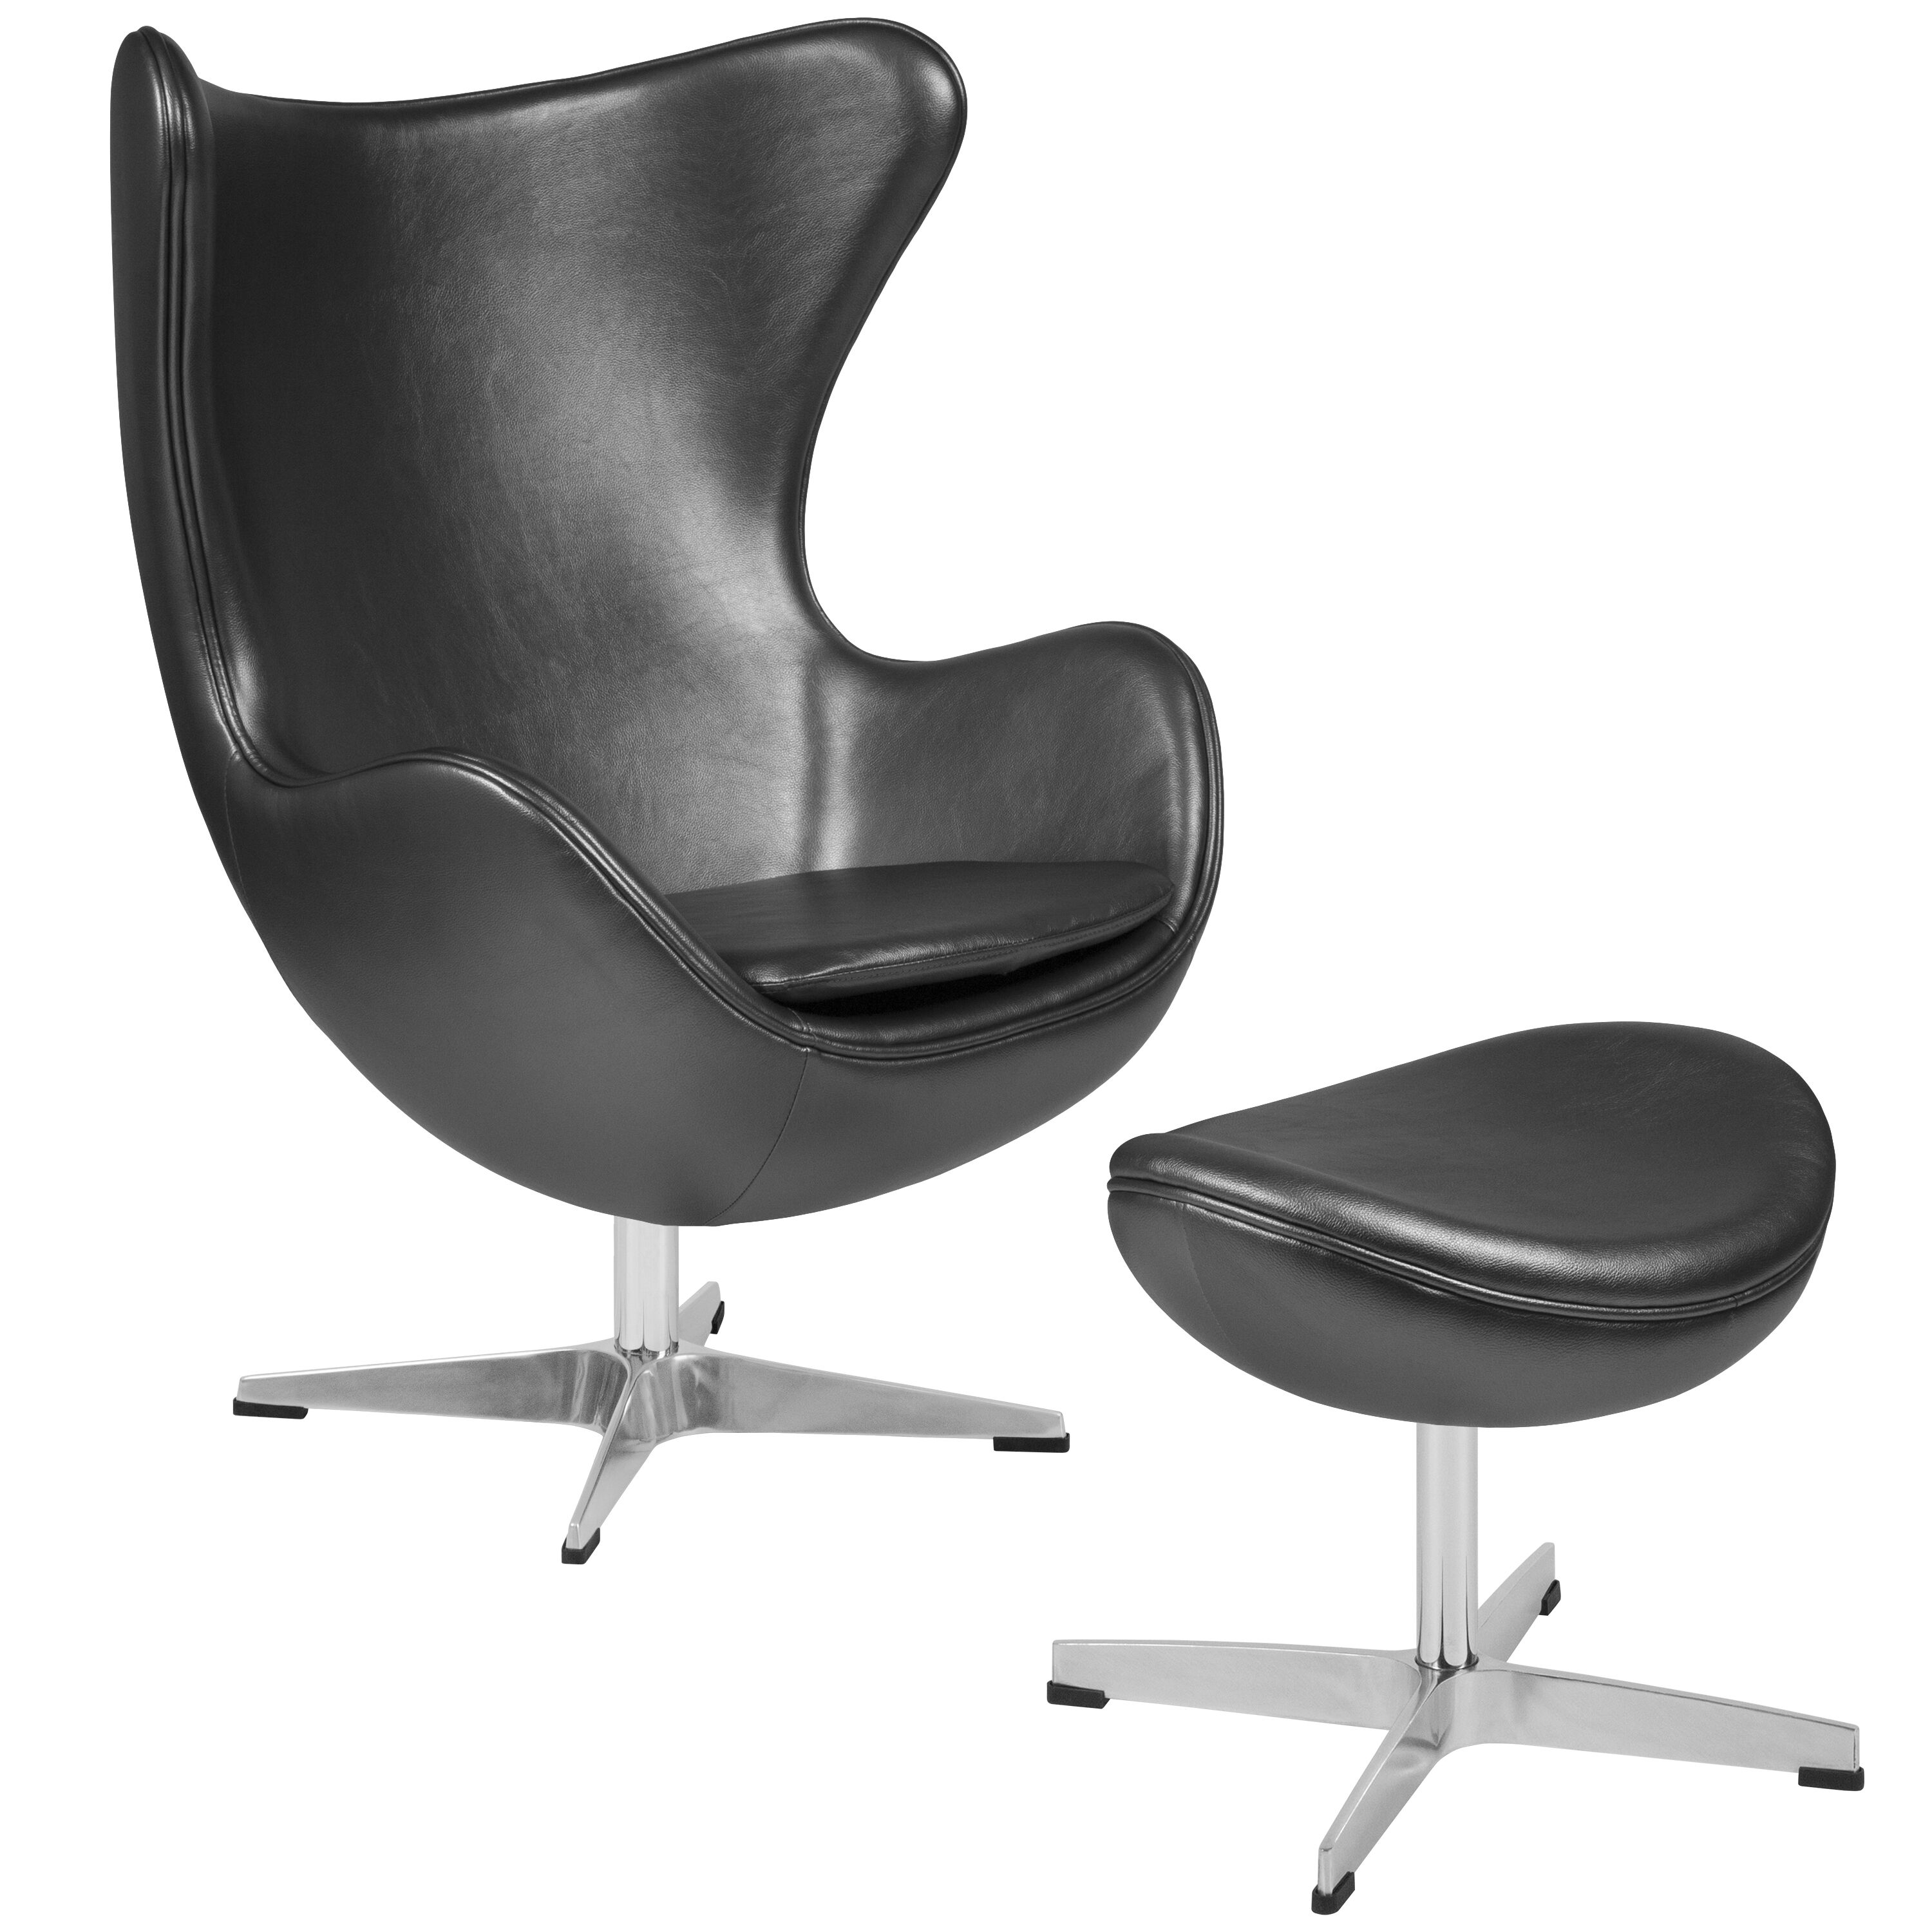 Gentil ... Our Gray Leather Egg Chair With Tilt Lock Mechanism And Ottoman Is On  Sale Now ...